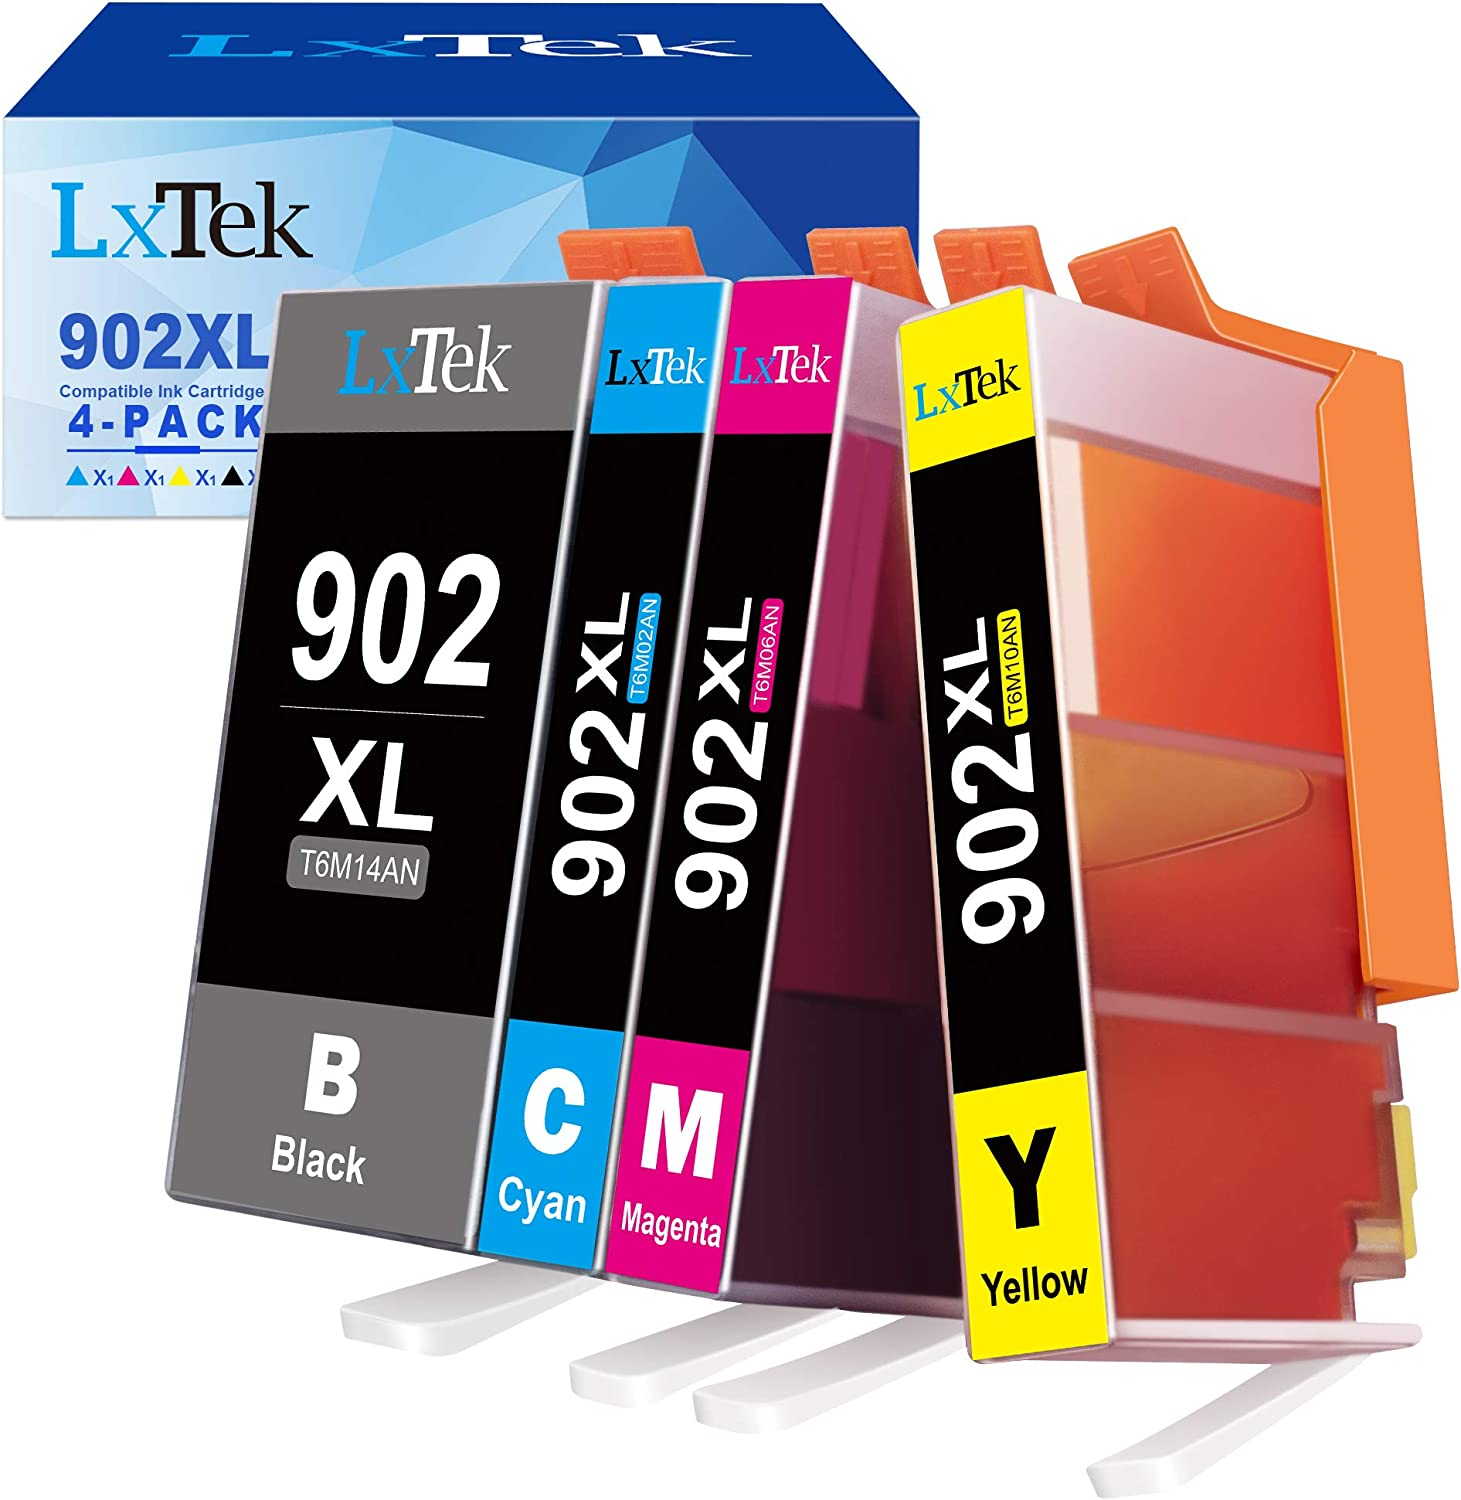 LxTek Compatible Ink Cartridge Replacement for HP 902 XL 902XL Ink Cartridge to use with Officejet Pro 6978 6968 6954 6962 Printer (4 Pack)